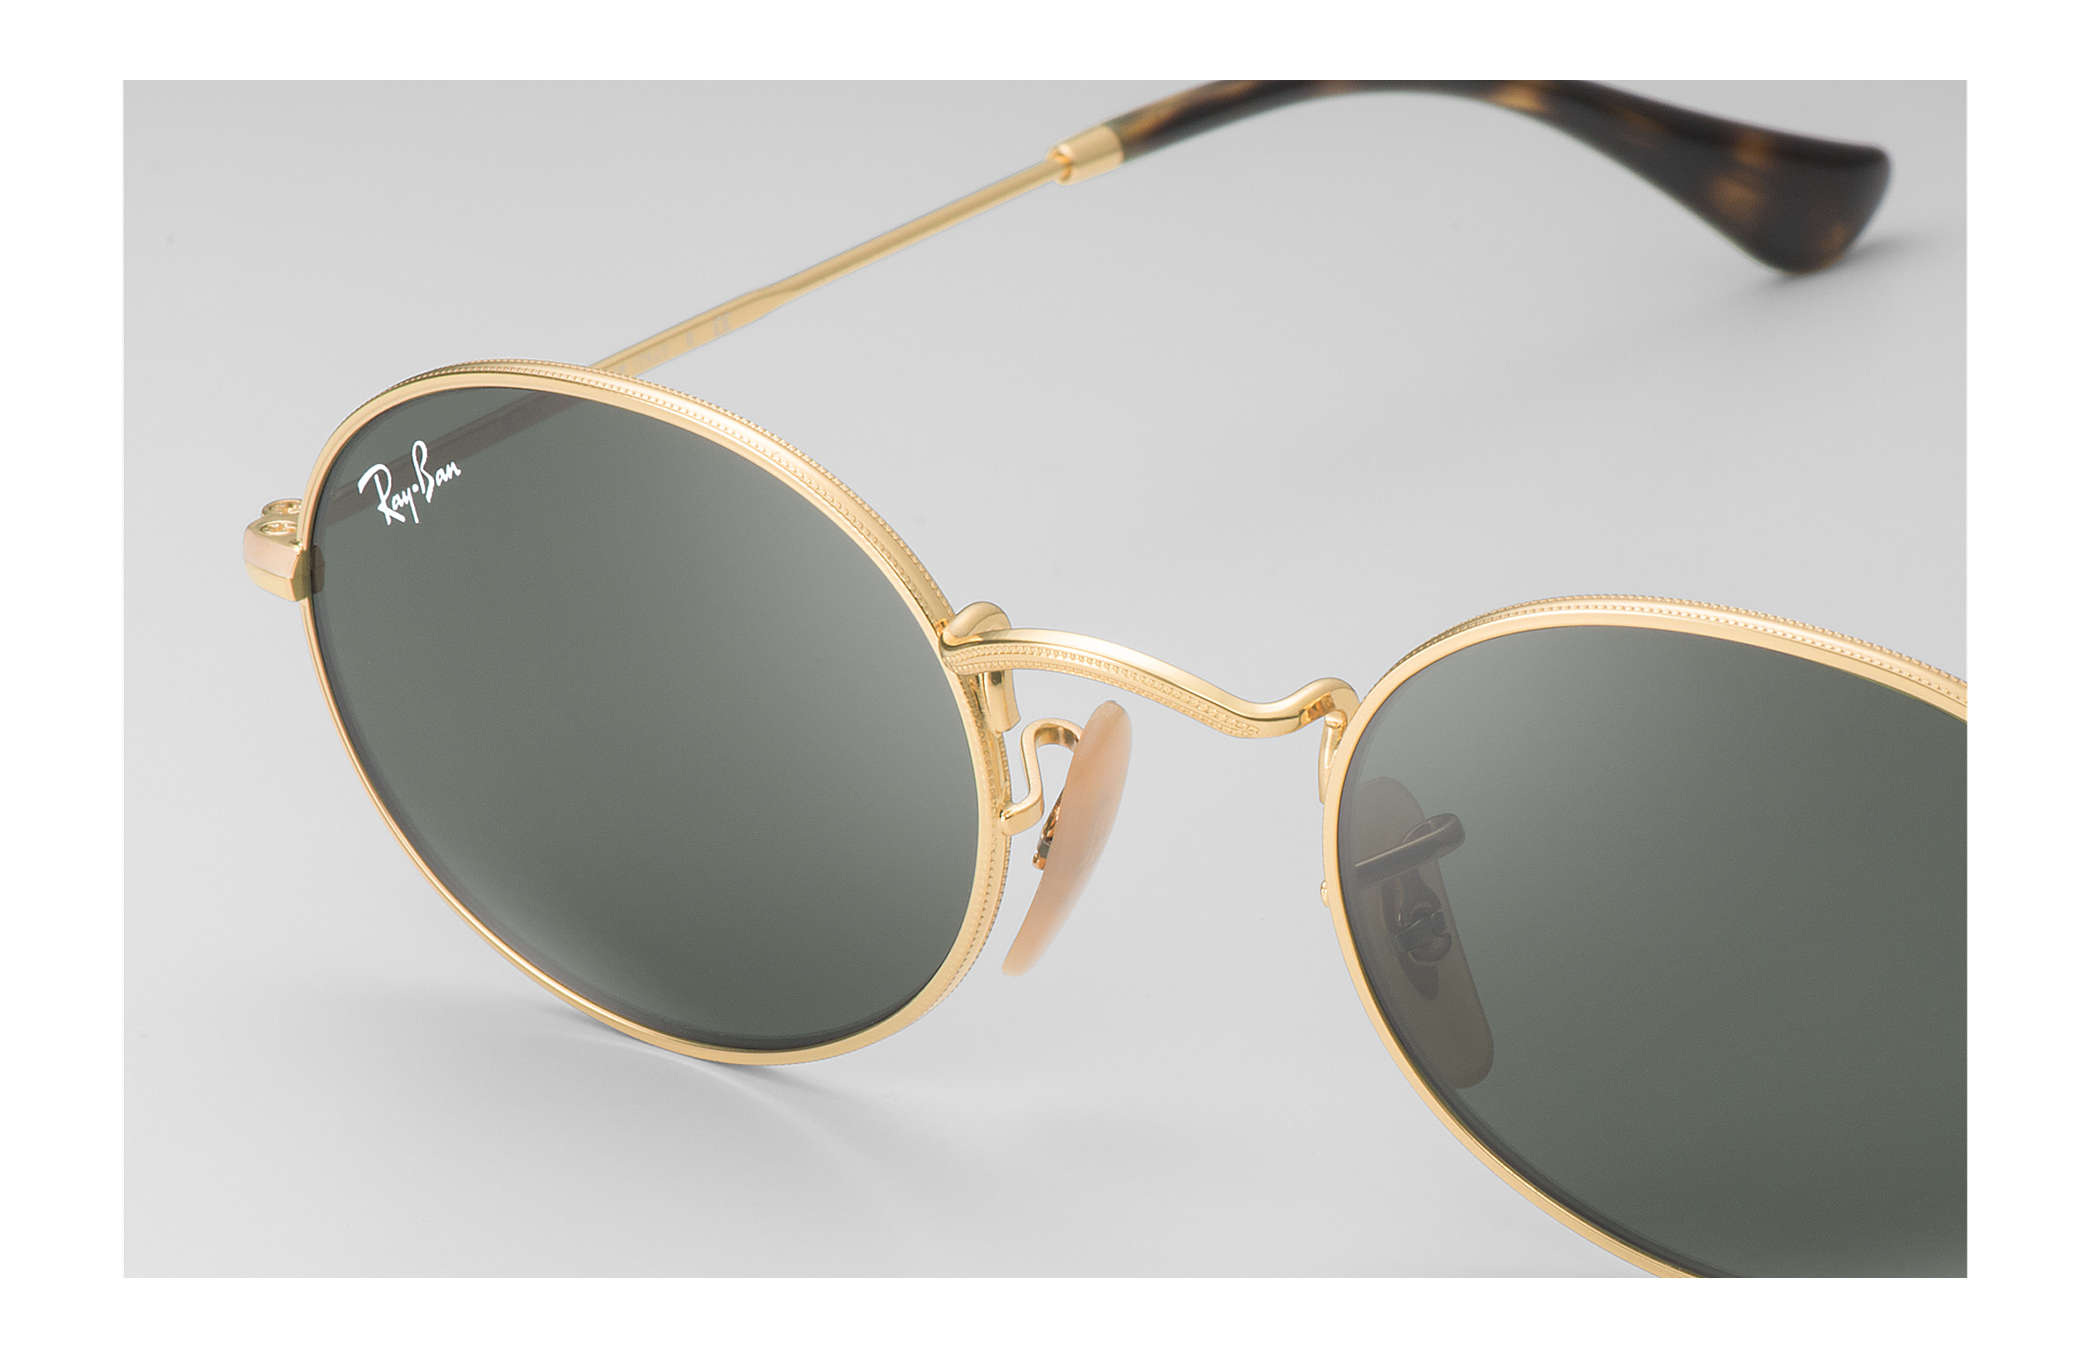 c55c829849f Ray-ban Icon Oval Flat Lens Sunglasses - Bitterroot Public Library